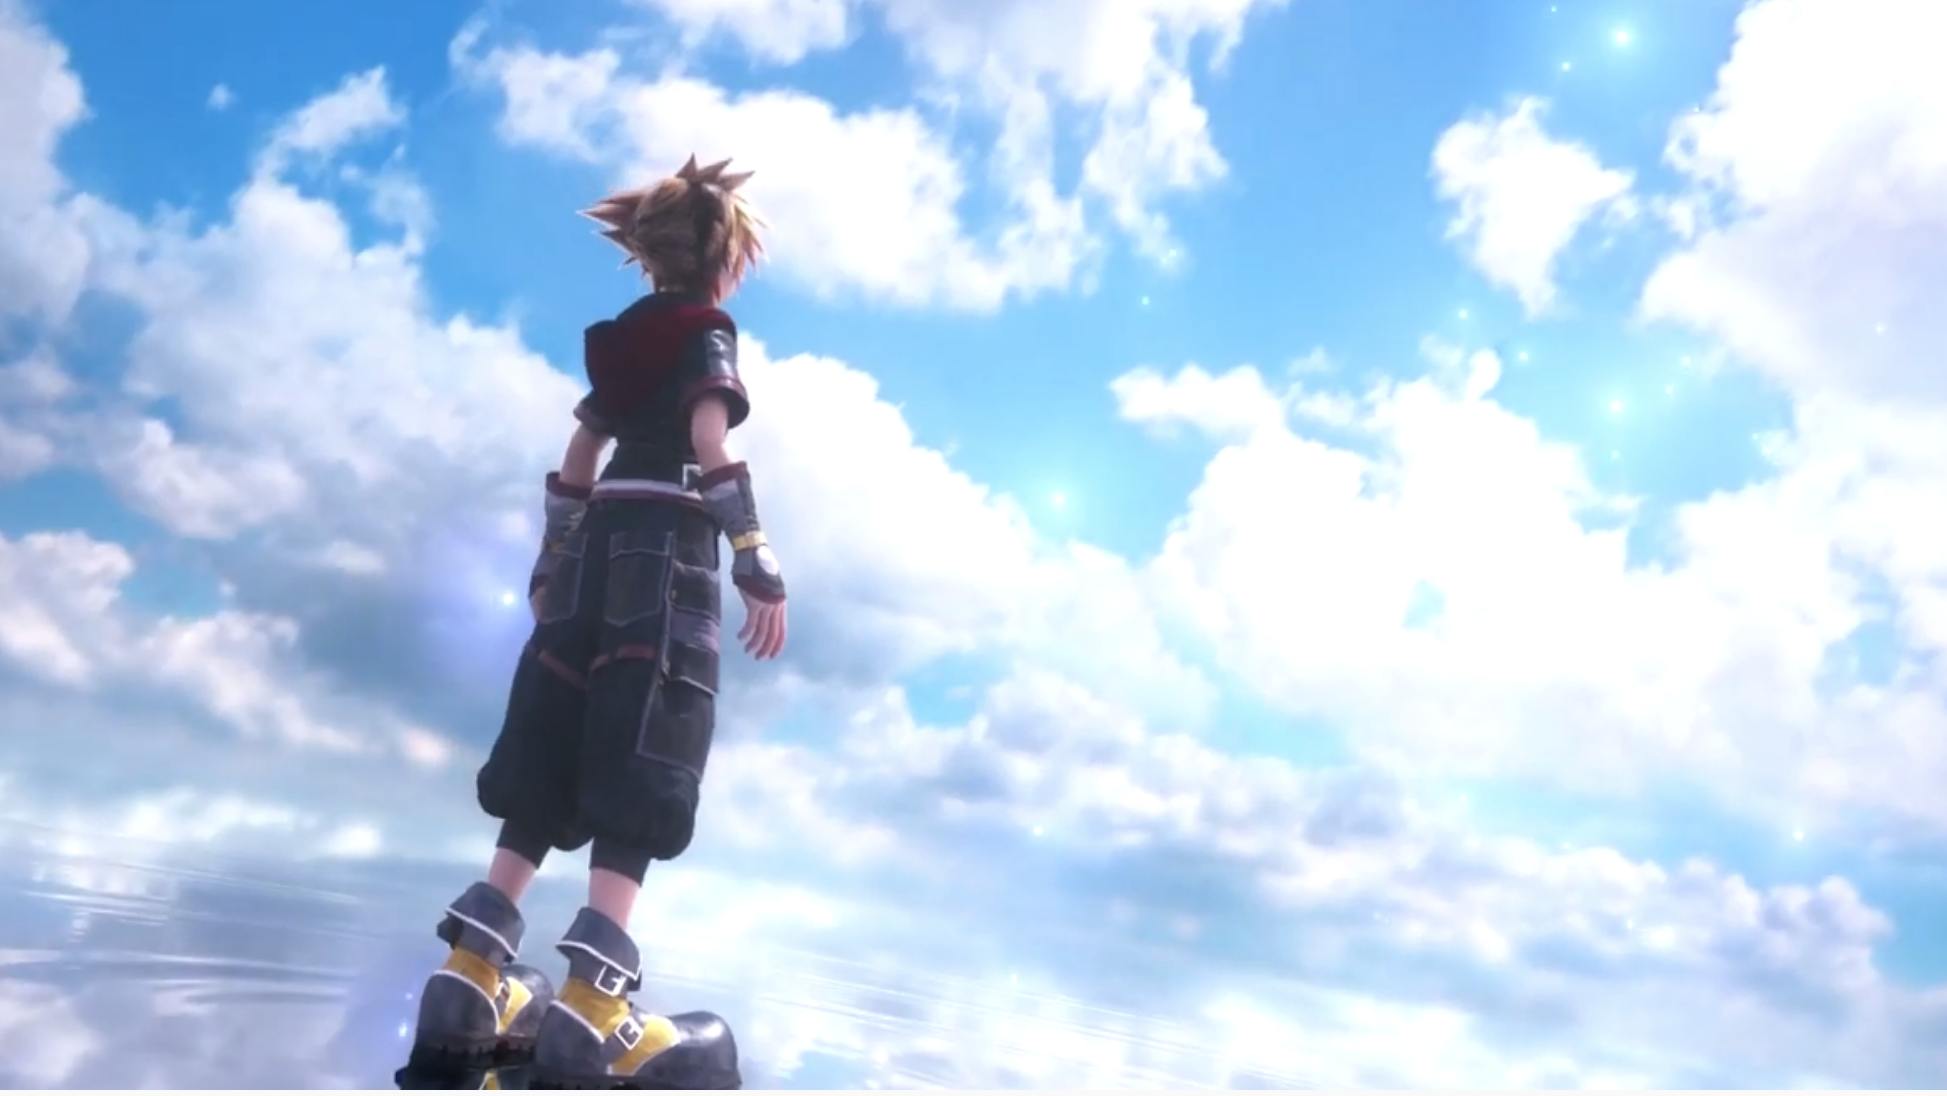 Kingdom Hearts III's New Secret Ending Is Breaking My Brain